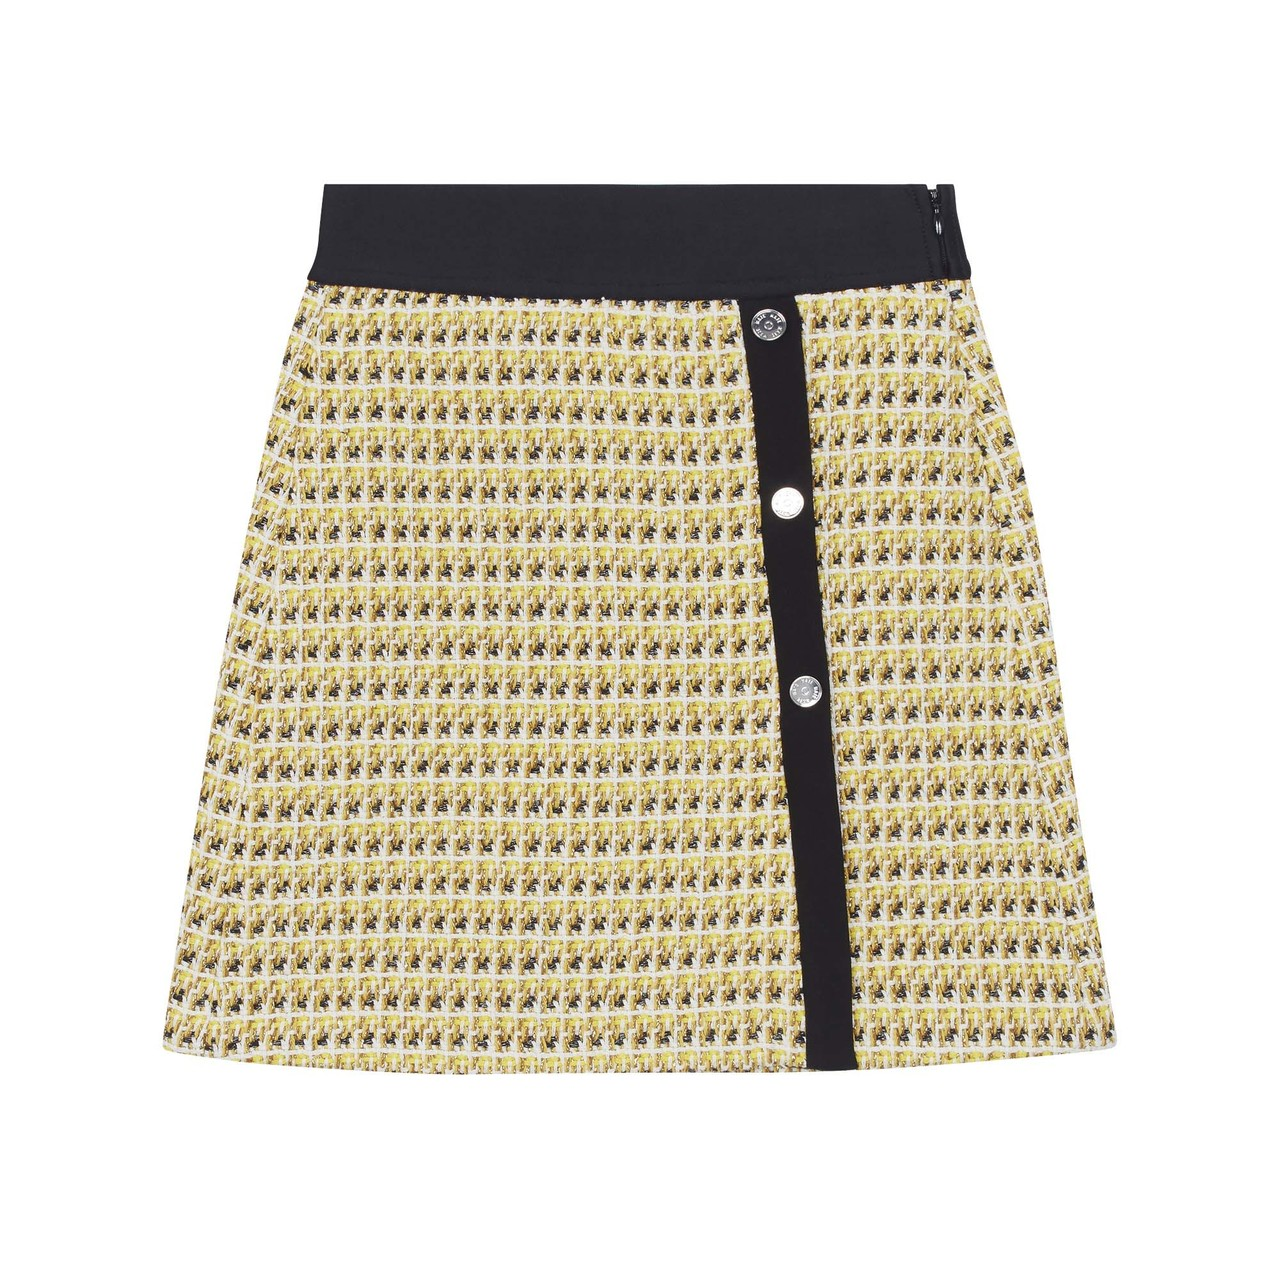 Short Skirt In Tweed And Lurex - Yellow